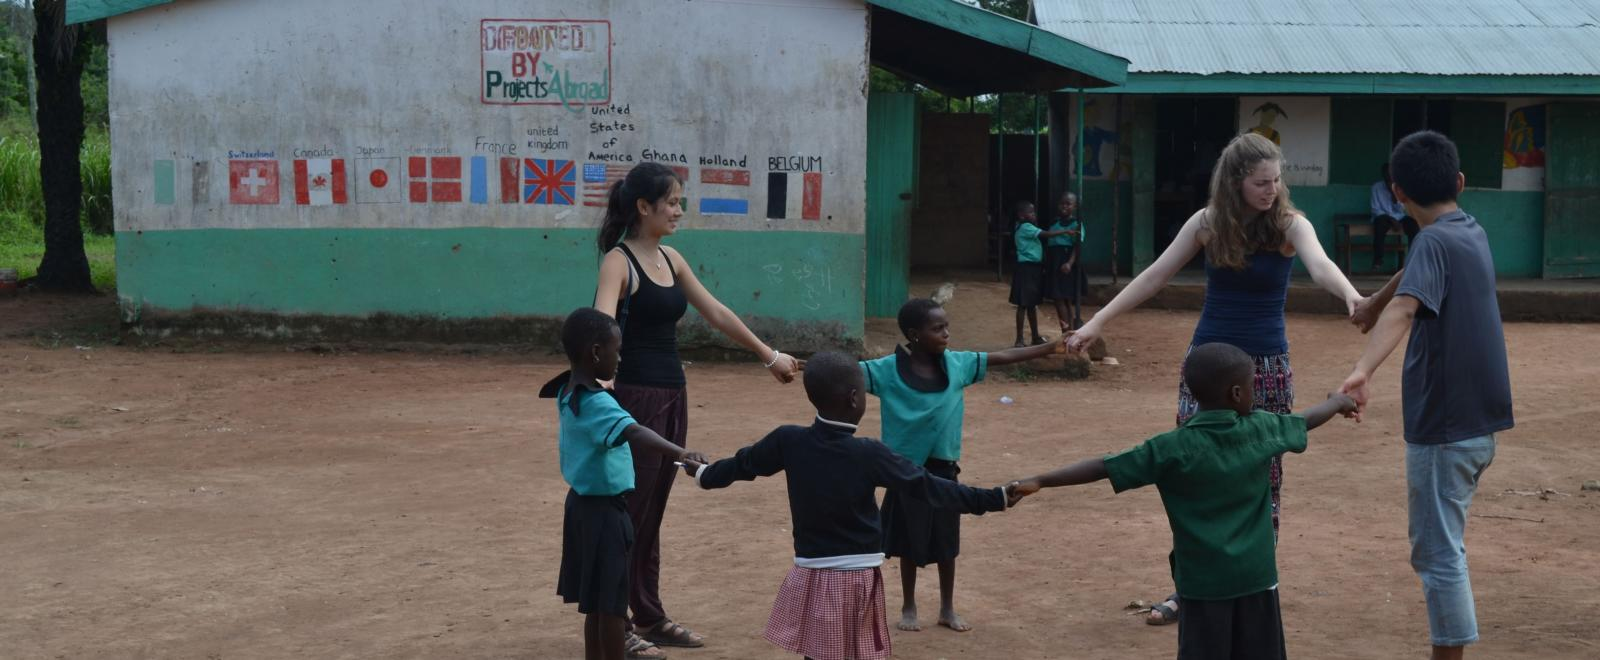 Group of teenage volunteers in Ghana play a game outdoors with children at a rural school.